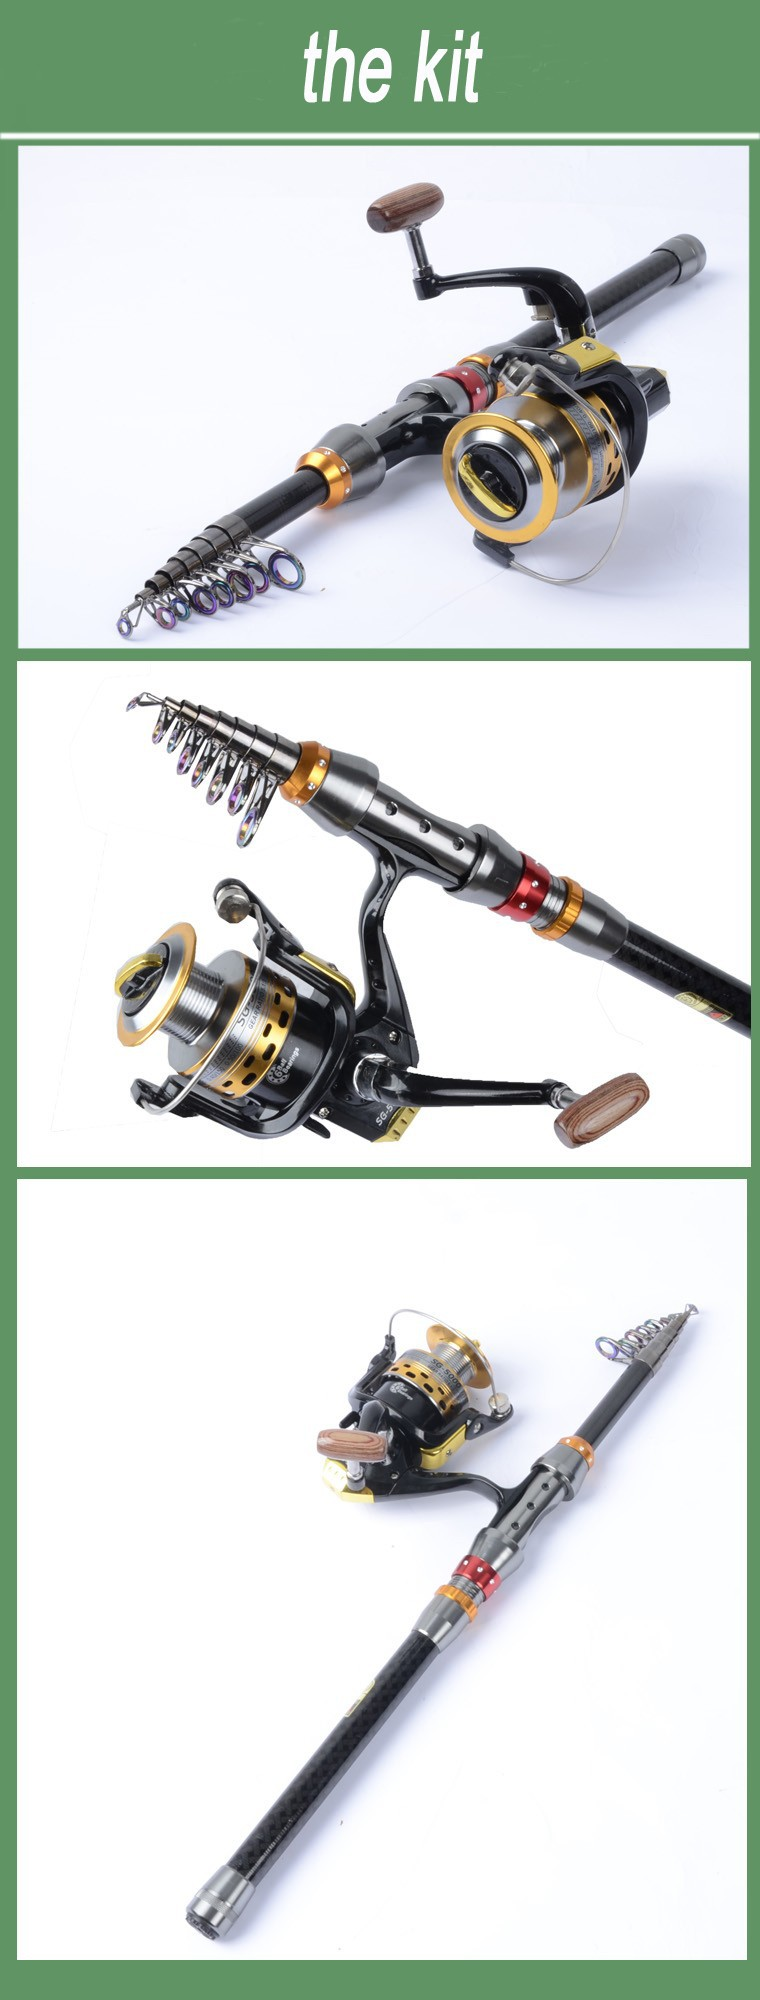 2014 new Carbon sea rod superhard Telescopic Fishing Rod Carbon 1.8-3.6M fishing Rod Spinning free shipping1104